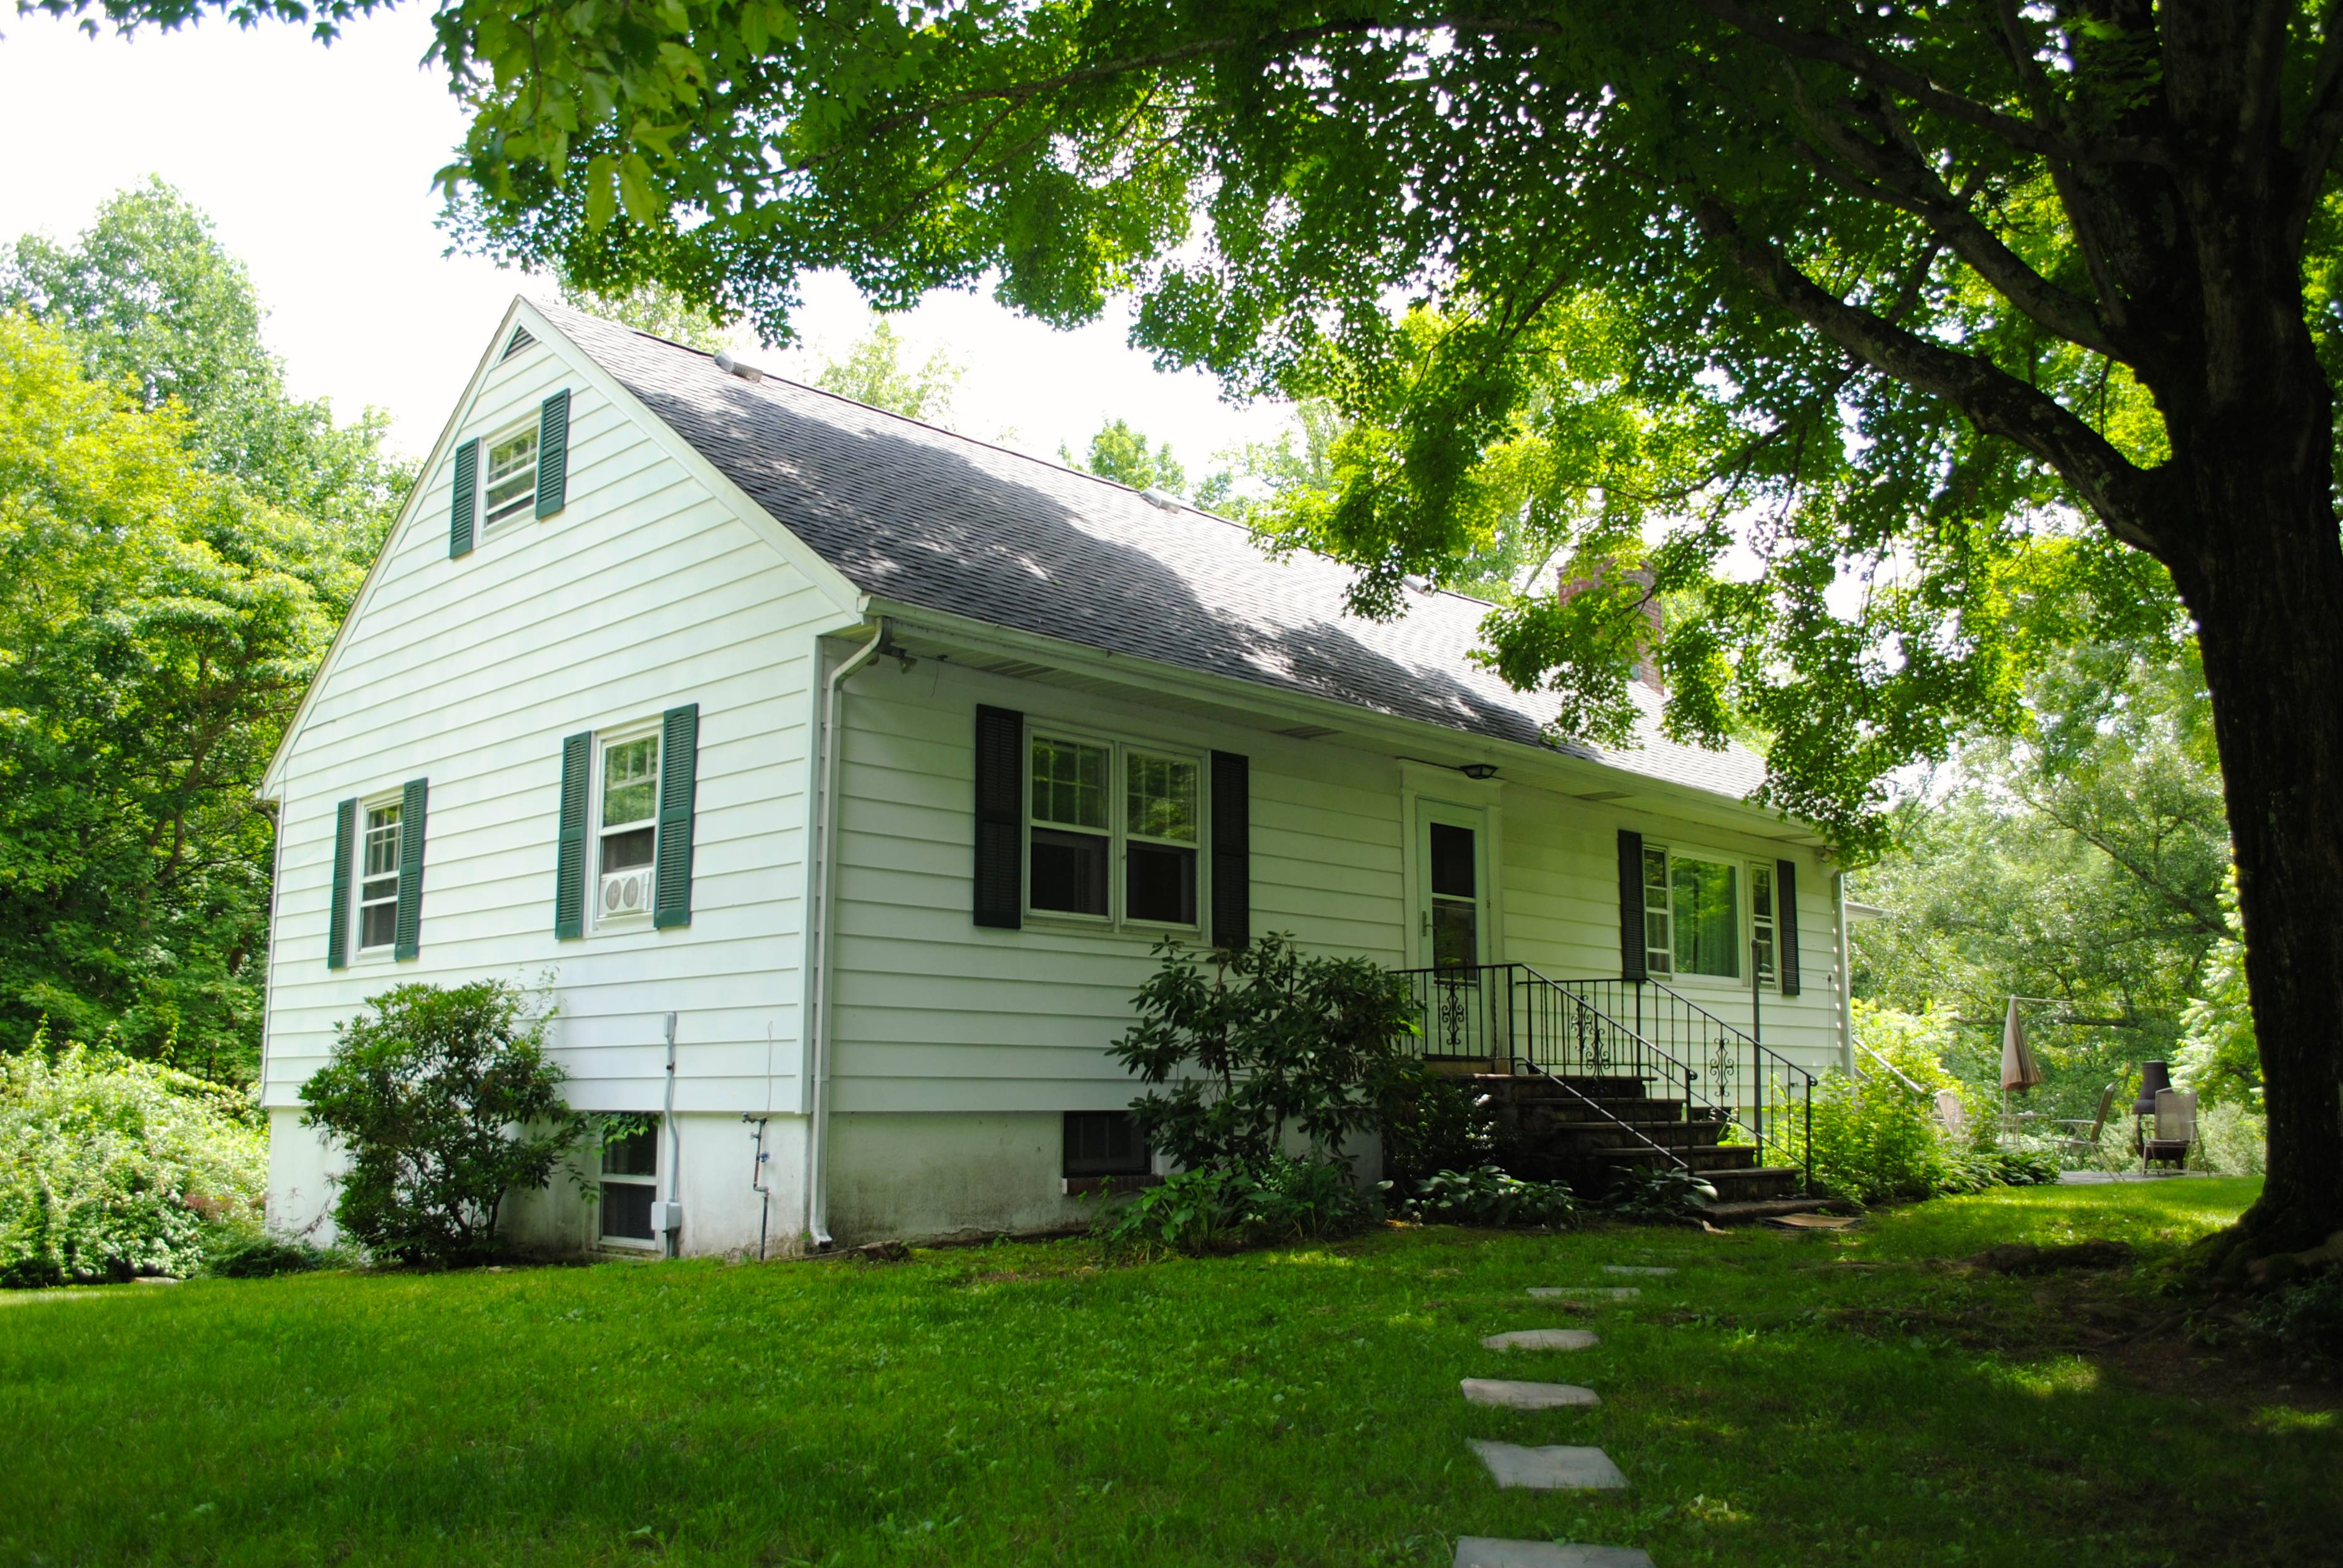 Single Family Home for Sale at Country Charmer 36 Seifert Lane Putnam Valley, New York 10579 United States